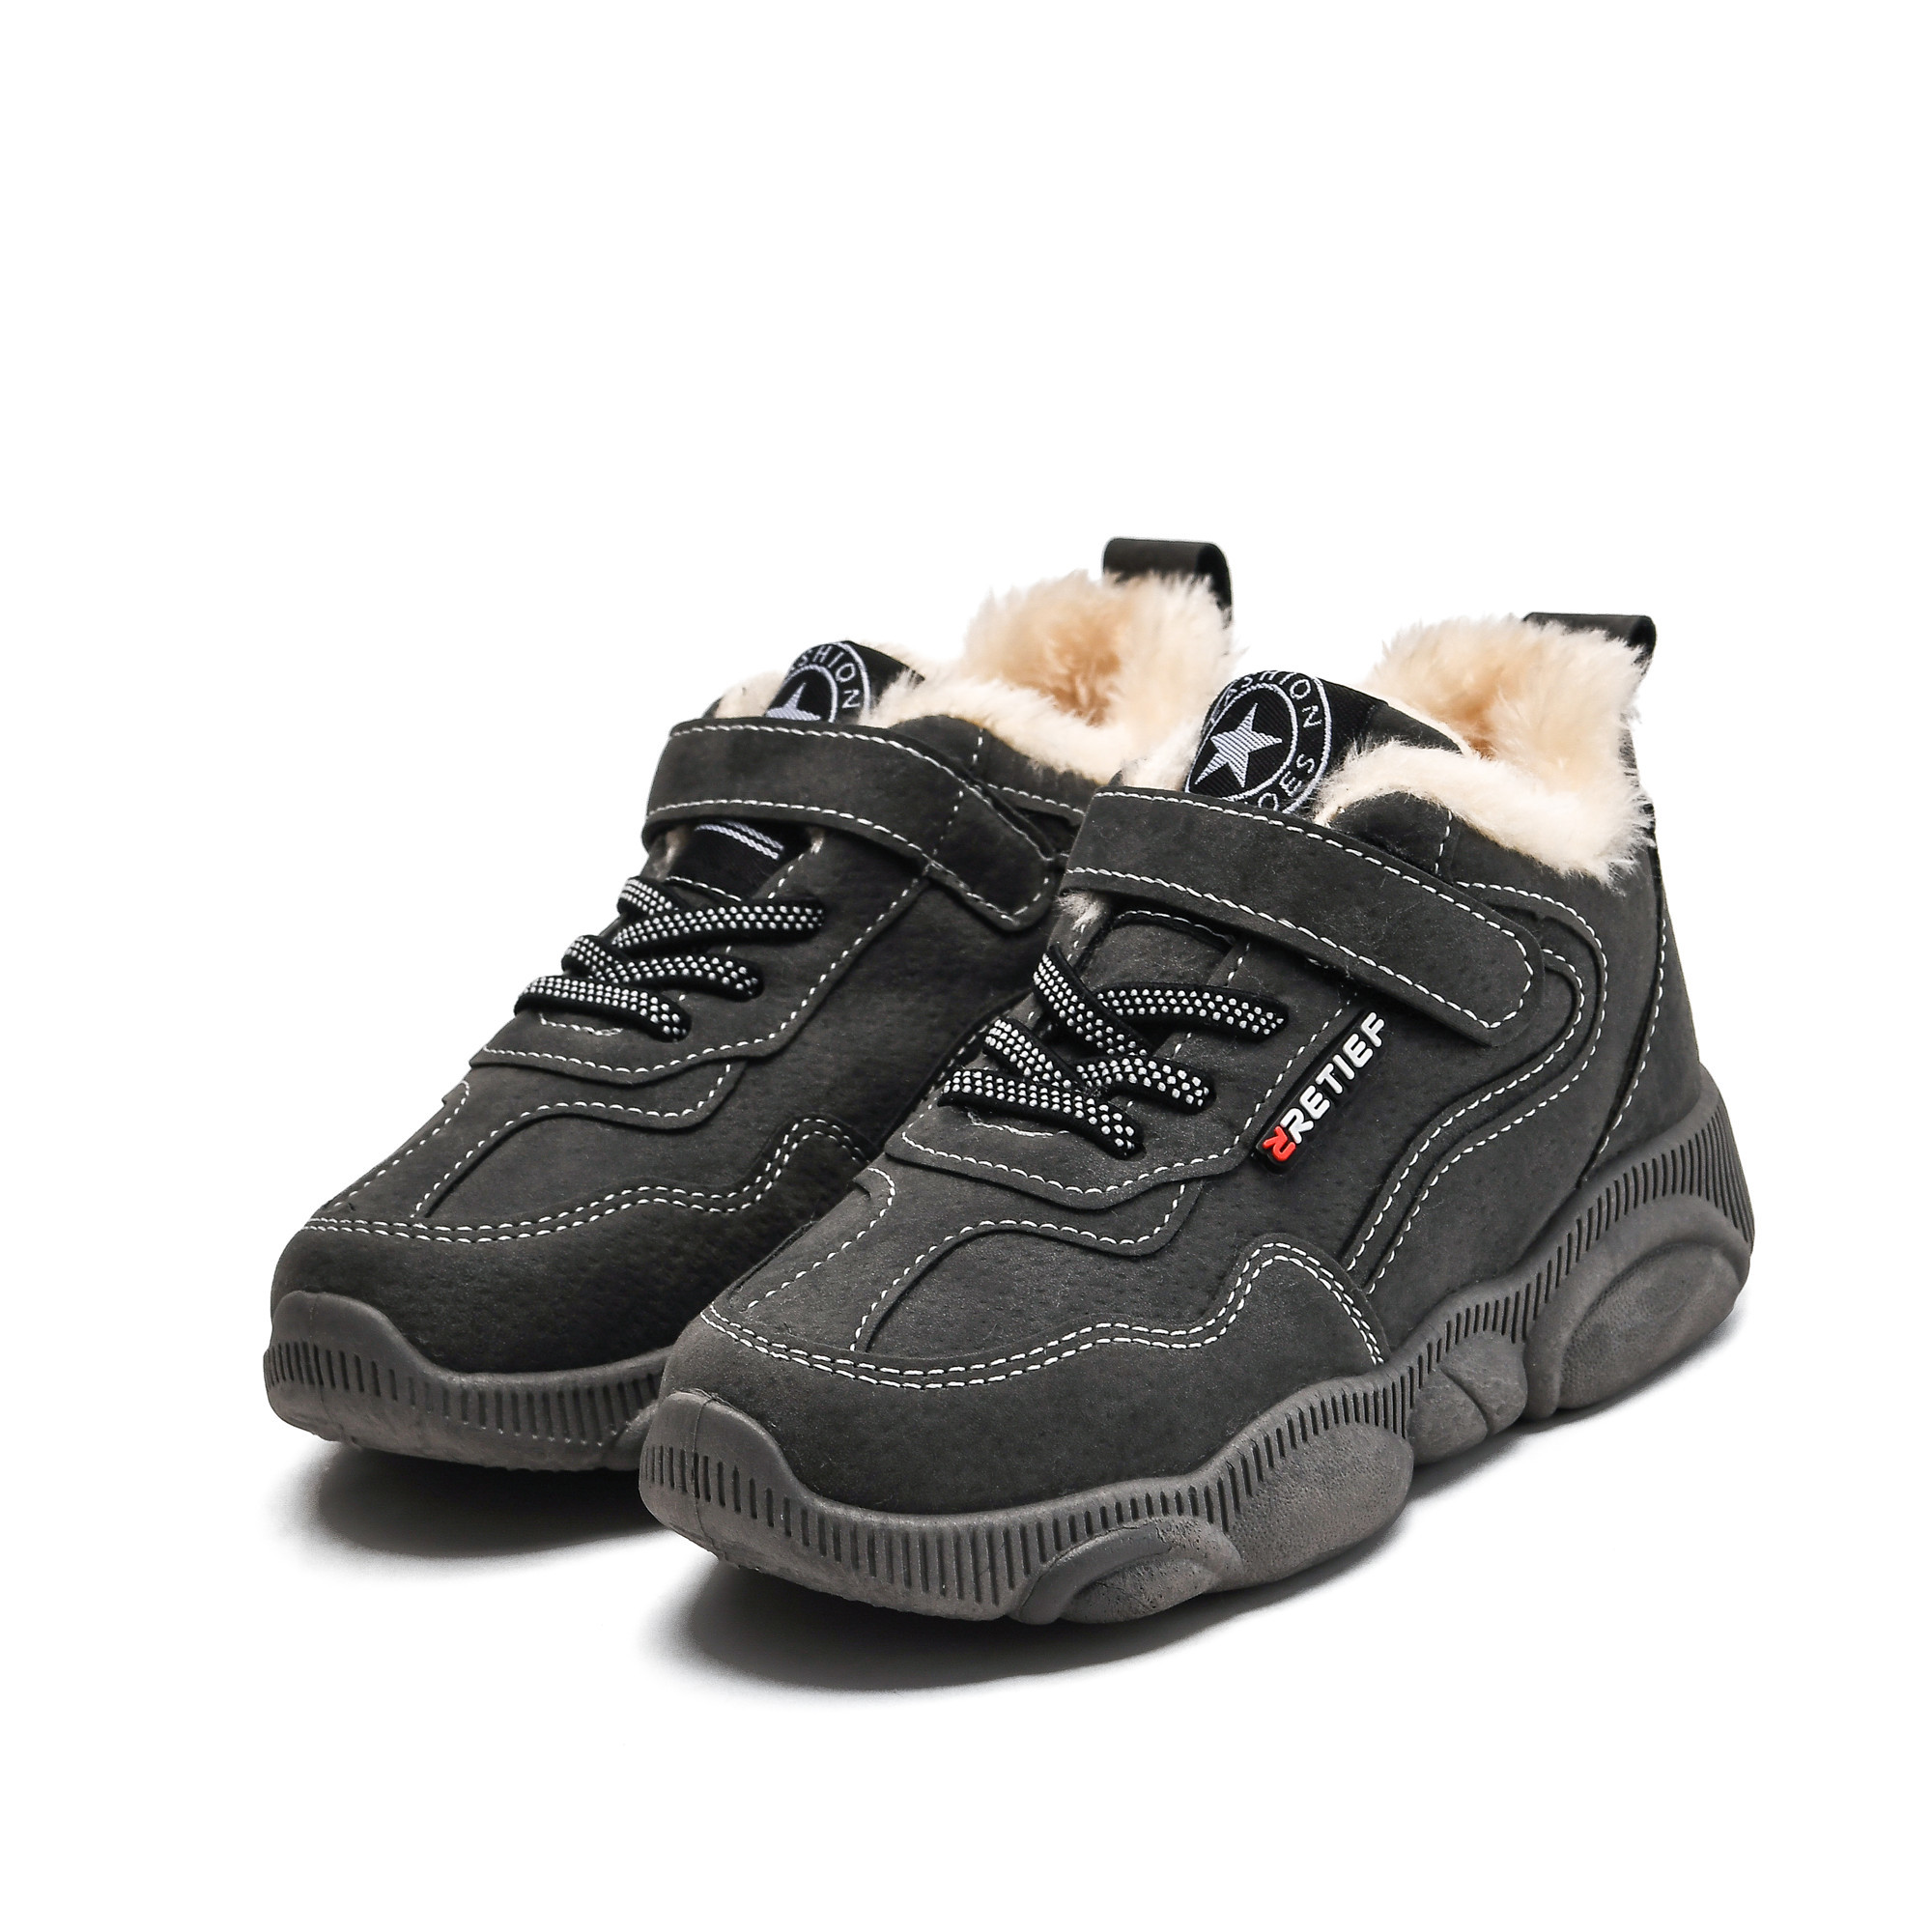 Winter Children Snow Boots Keep Warm Kids Shoes Boys Waterproof Non-slip Sports Shoes Girl Plush Thick Cotton-padded Short Boots